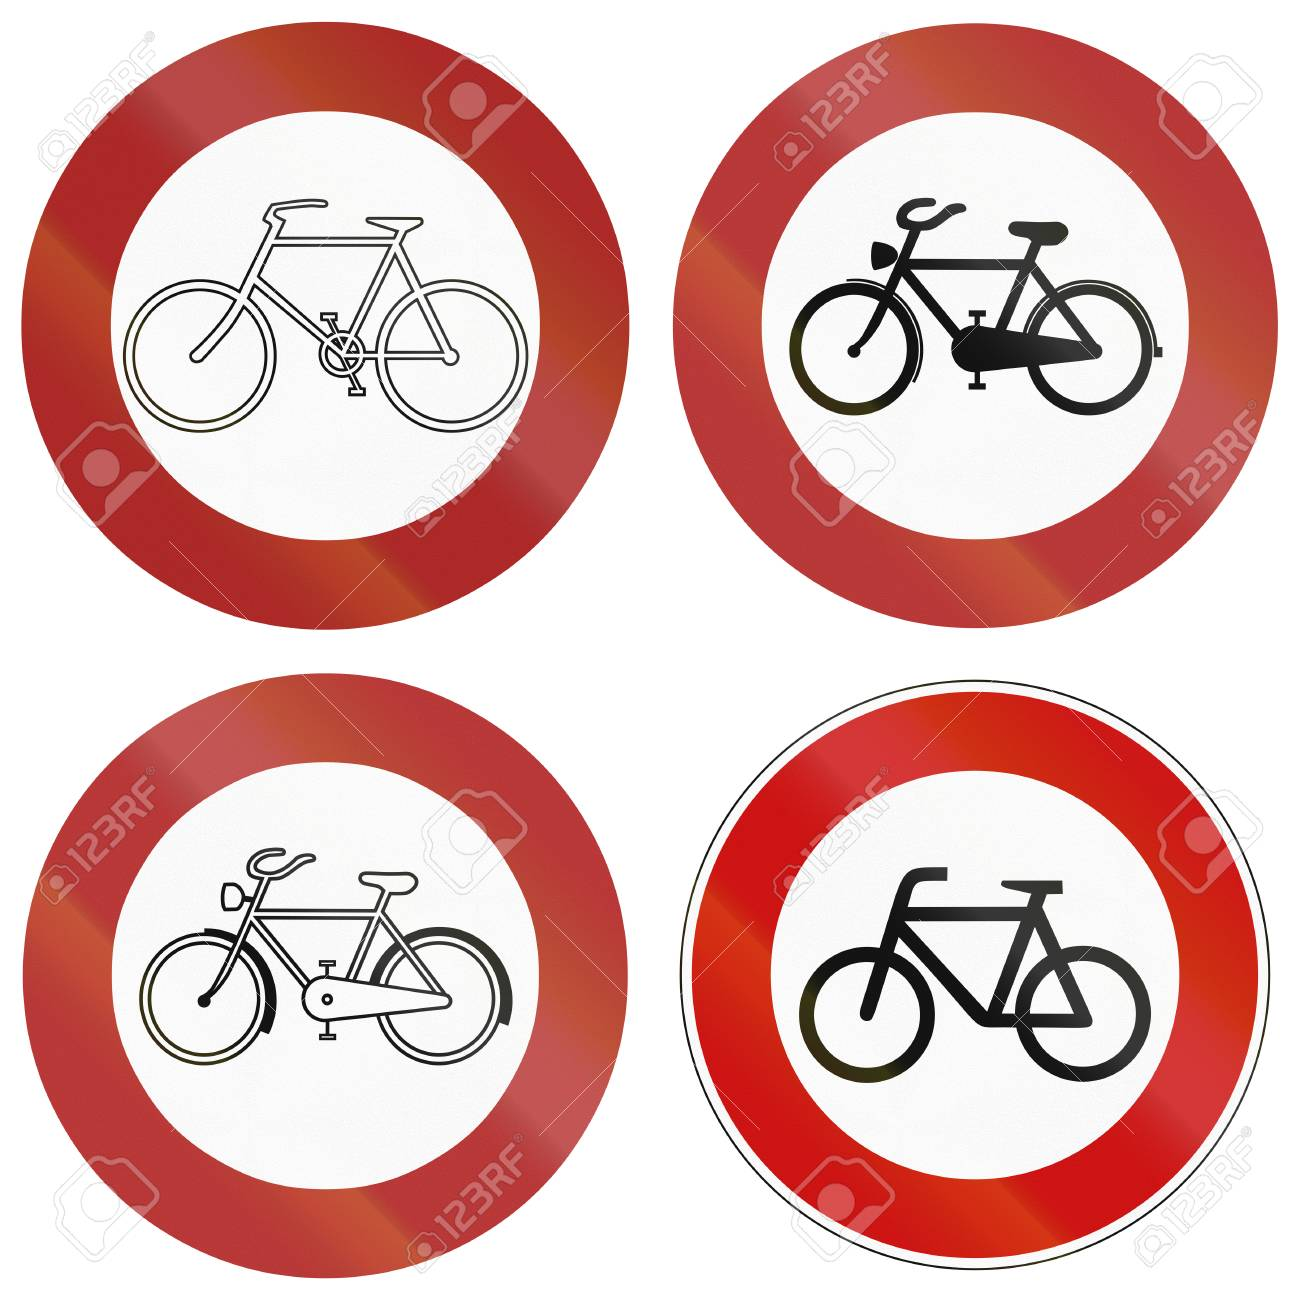 Collection Of Historic And Modern Bottom Right No Bicycle Signs Stock Photo Picture And Royalty Free Image Image 39651926